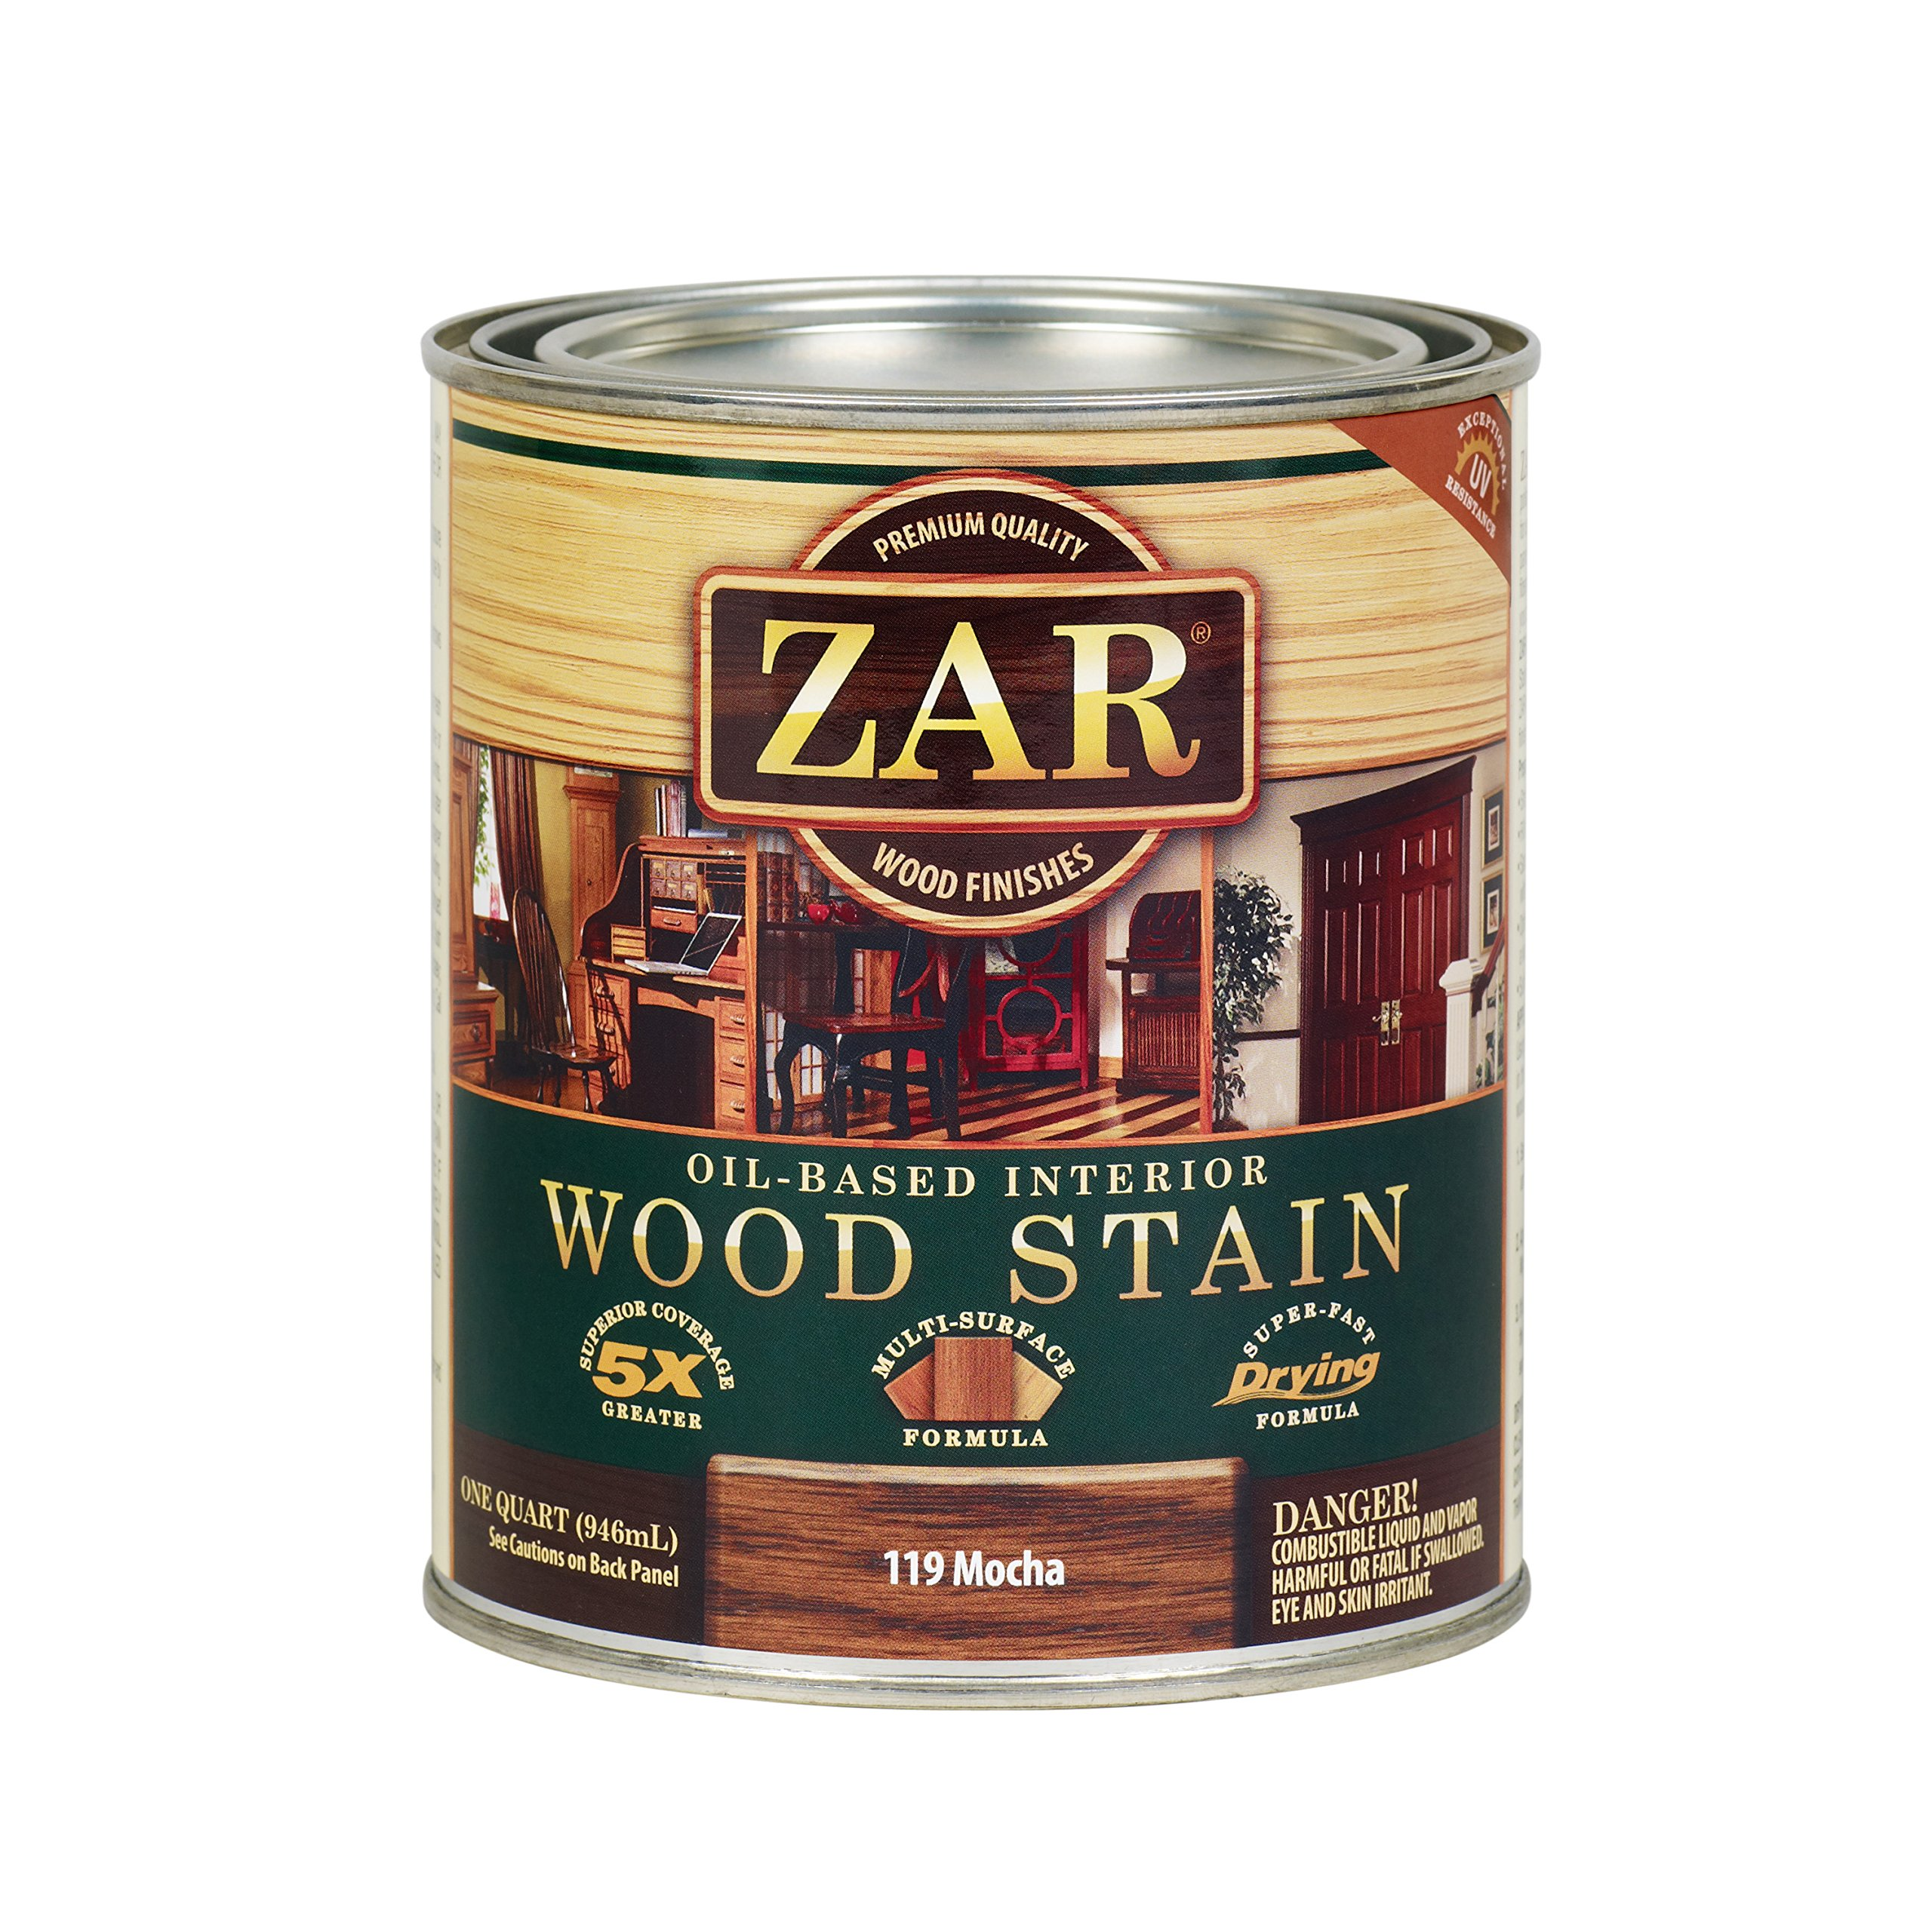 Zar Wood Stain 11912 Qt Mocha Stain Household Wood Stains